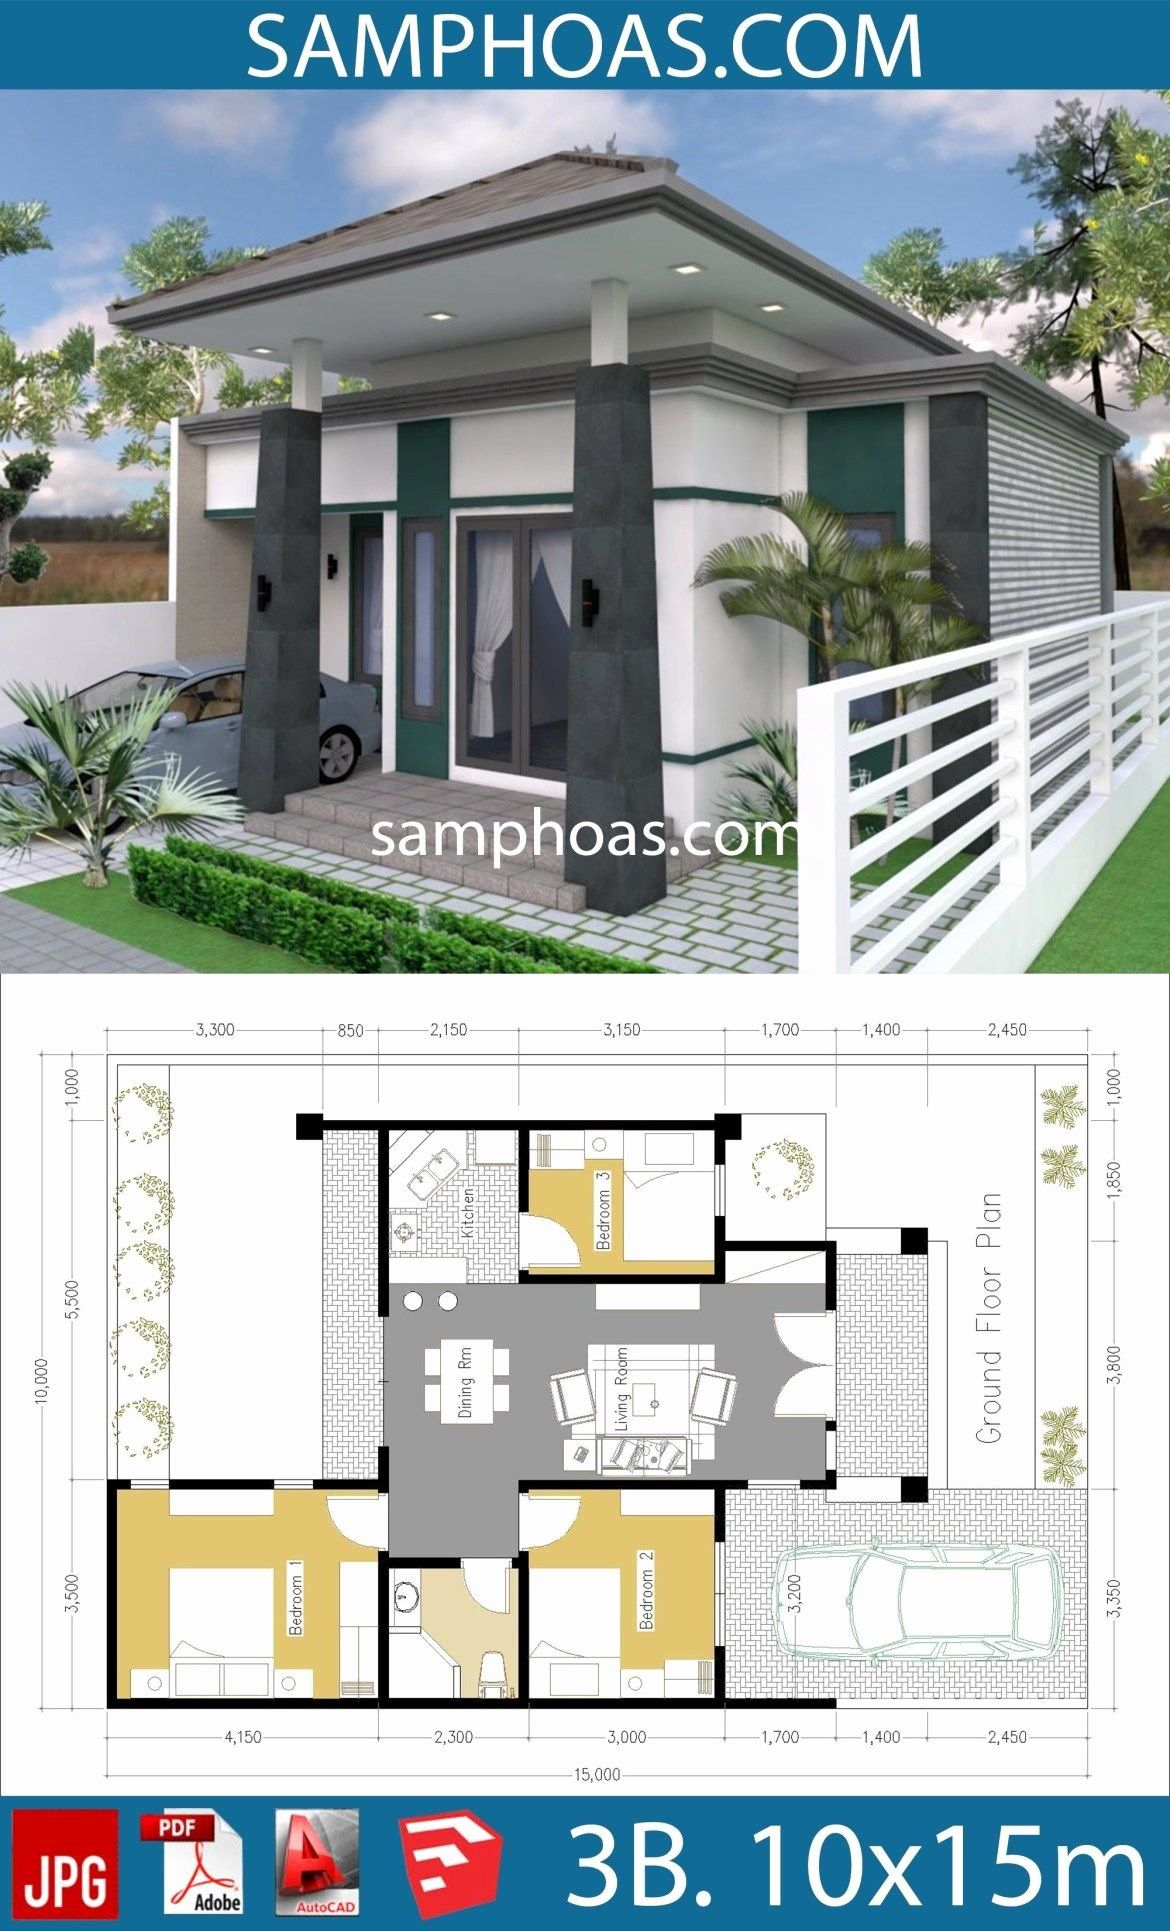 150 000 House Plans New E Story House With 3 Bedroom 10x15m Modern Lake House Story House Lake House Plans